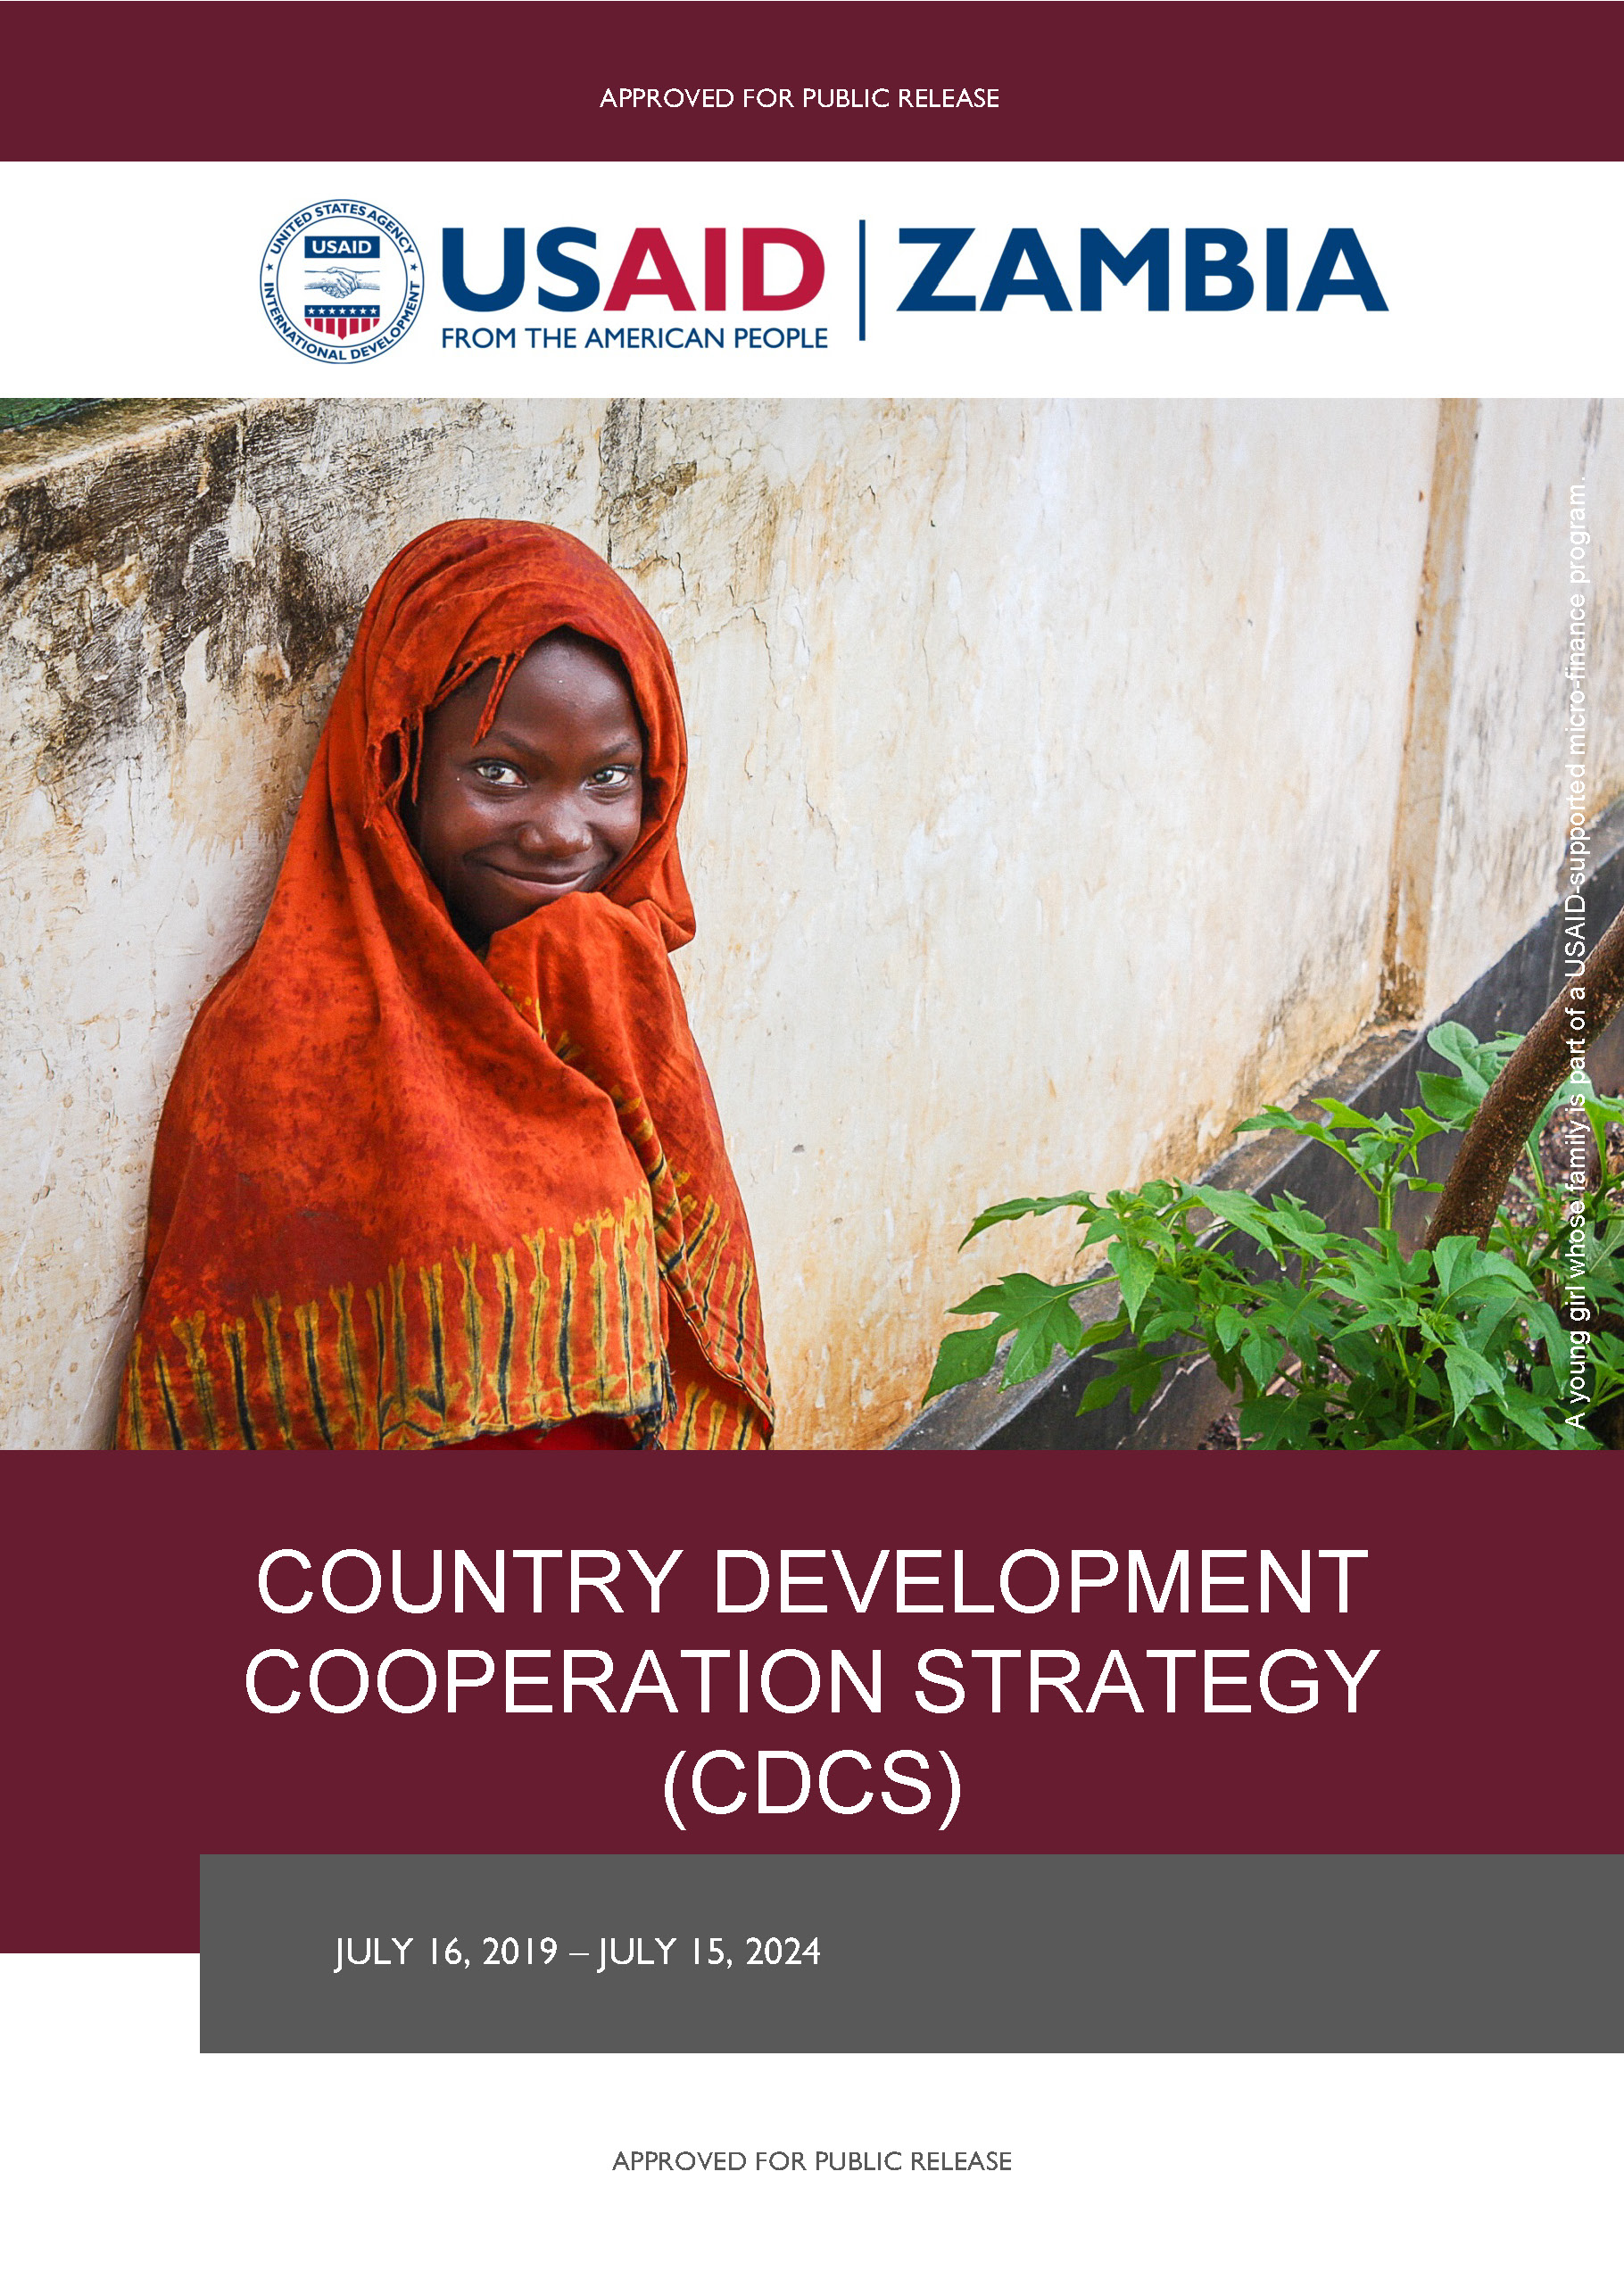 USAID/Zambia 2019-2024 Country Development Cooperation Strategy (CDCS)